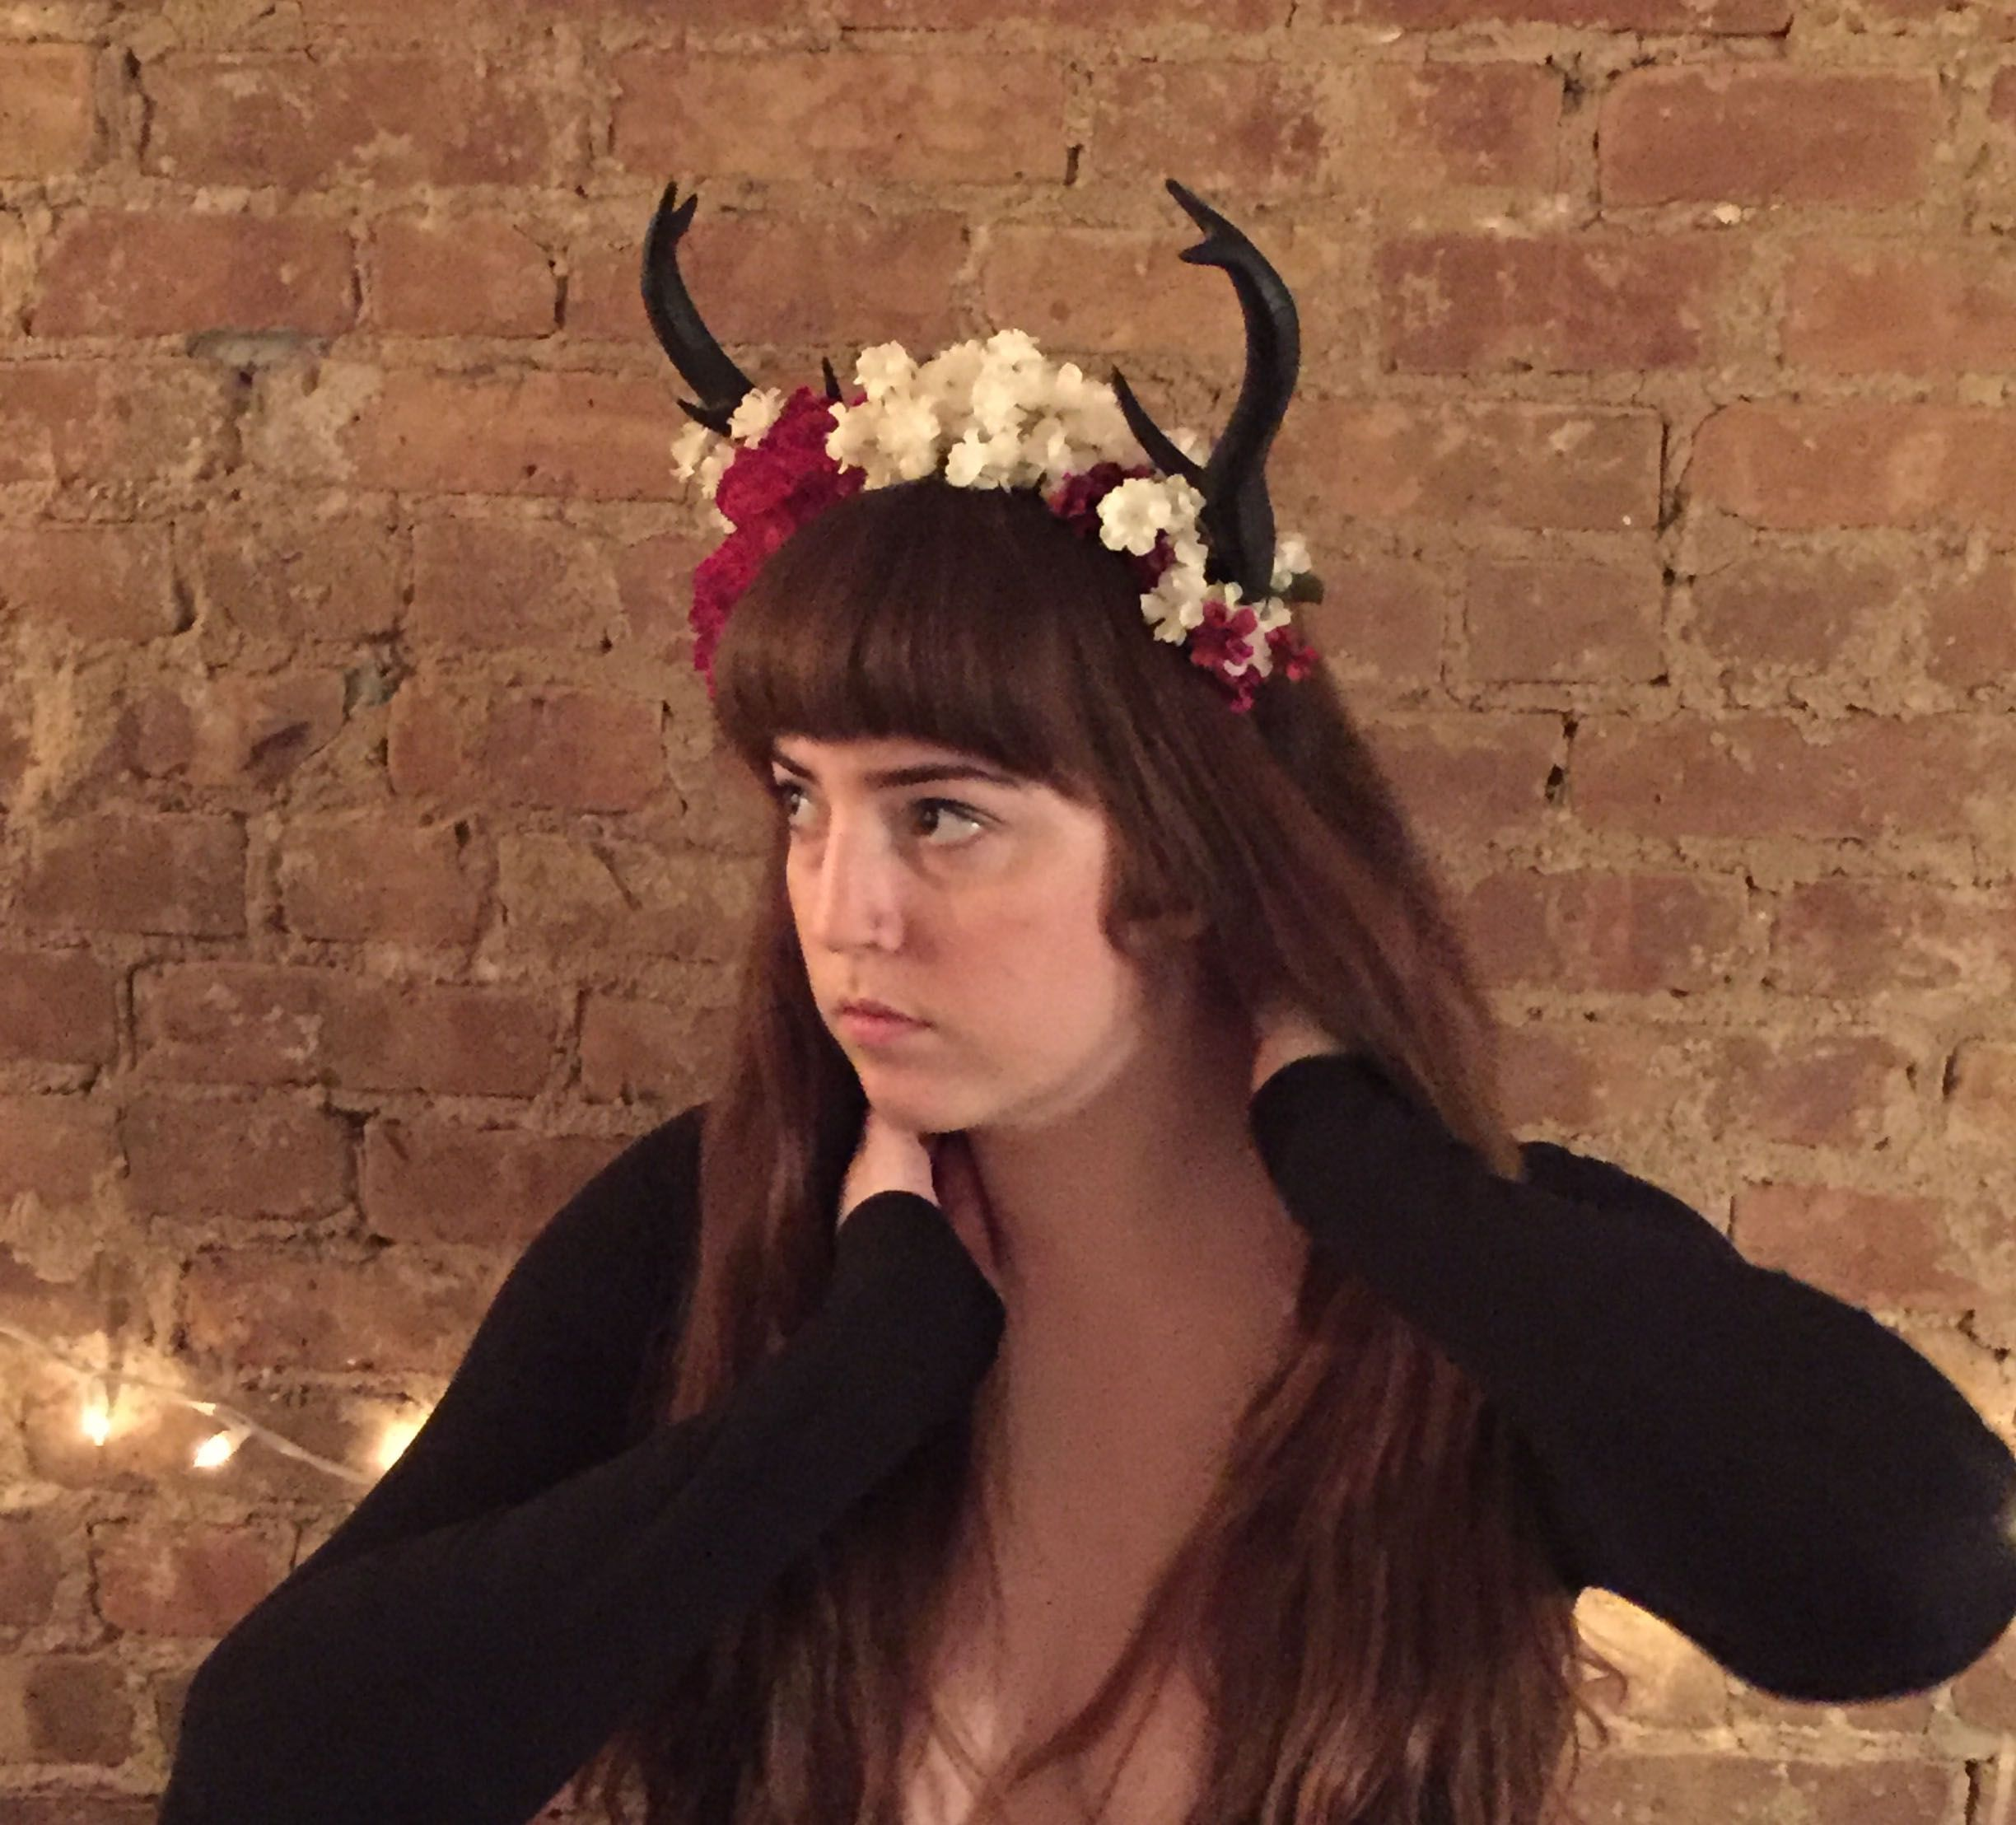 A Lovely 3d Printed Antlersflower Crown Combo Comissioned By A